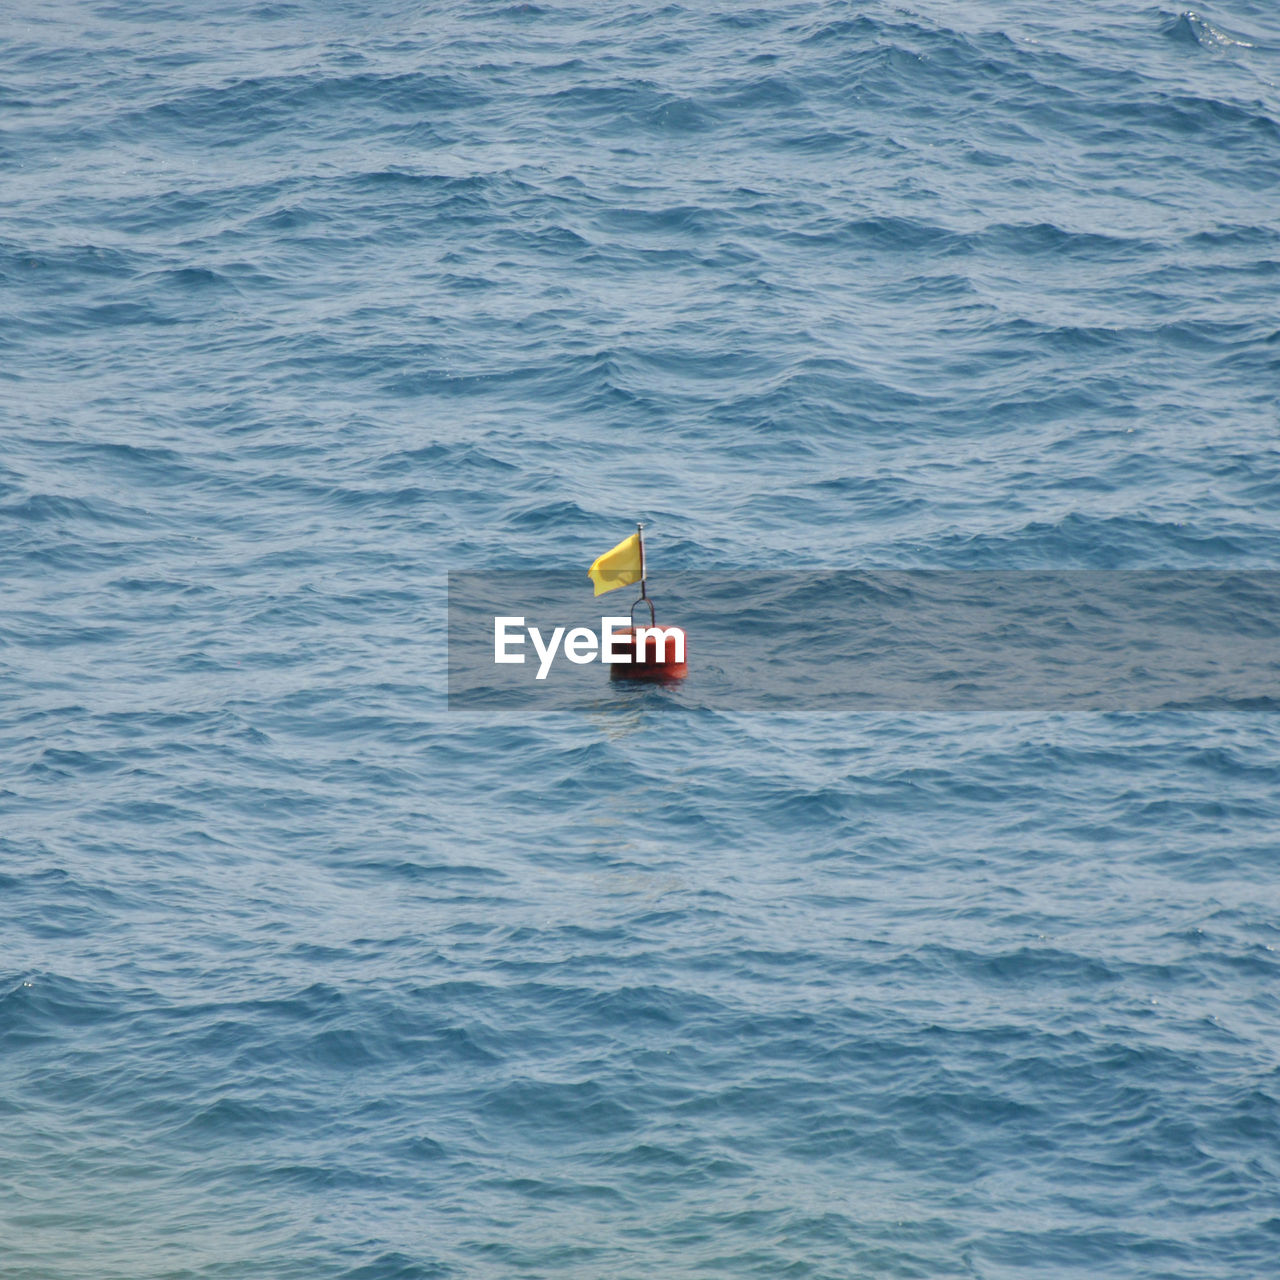 water, floating, floating on water, no people, waterfront, sea, buoy, rippled, nature, day, safety, tranquility, guidance, outdoors, security, single object, protection, tranquil scene, sign